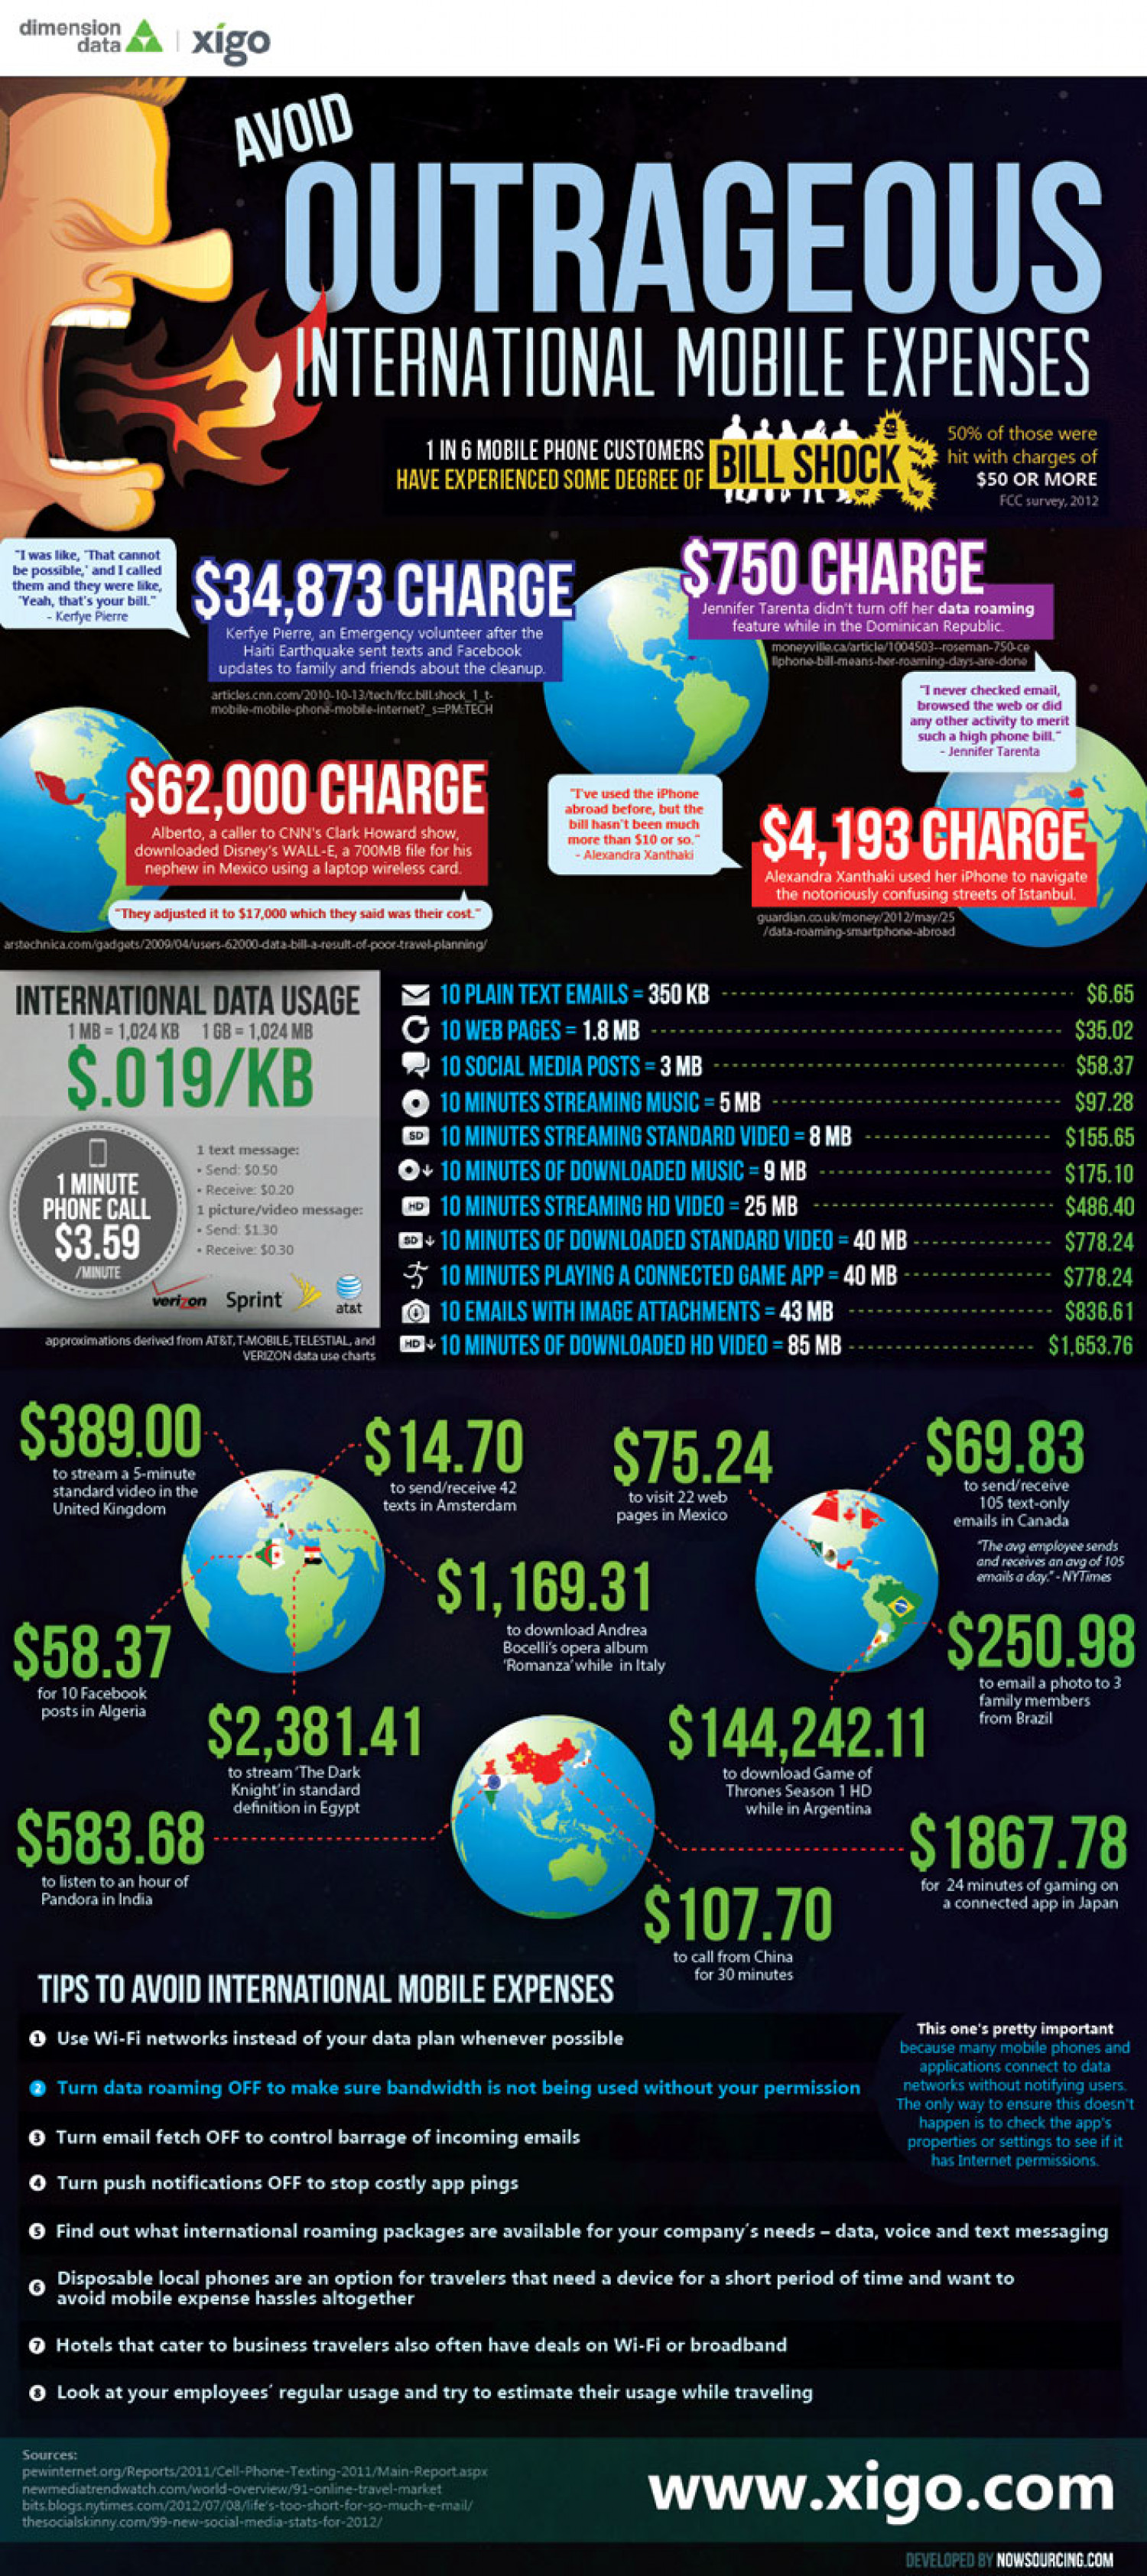 Avoid Outrageous International Mobile Expenses Infographic